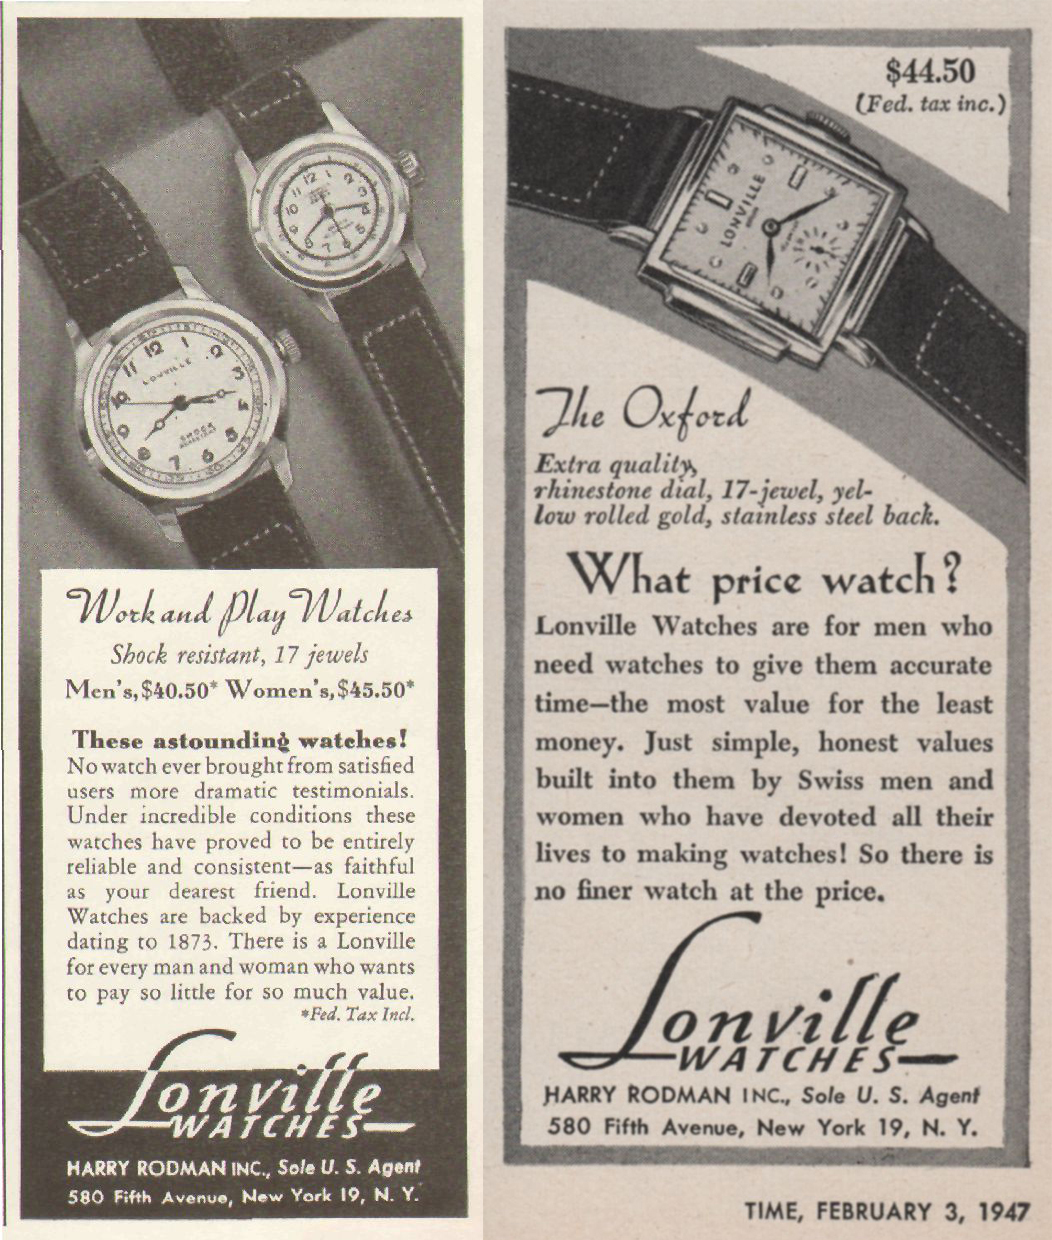 (L) 1948 Lonville Work and Play 17 Jewels Watch Advertisment. (R) 1947 Lonville Oxford 17-Jewel Dress Watch Advertisment.